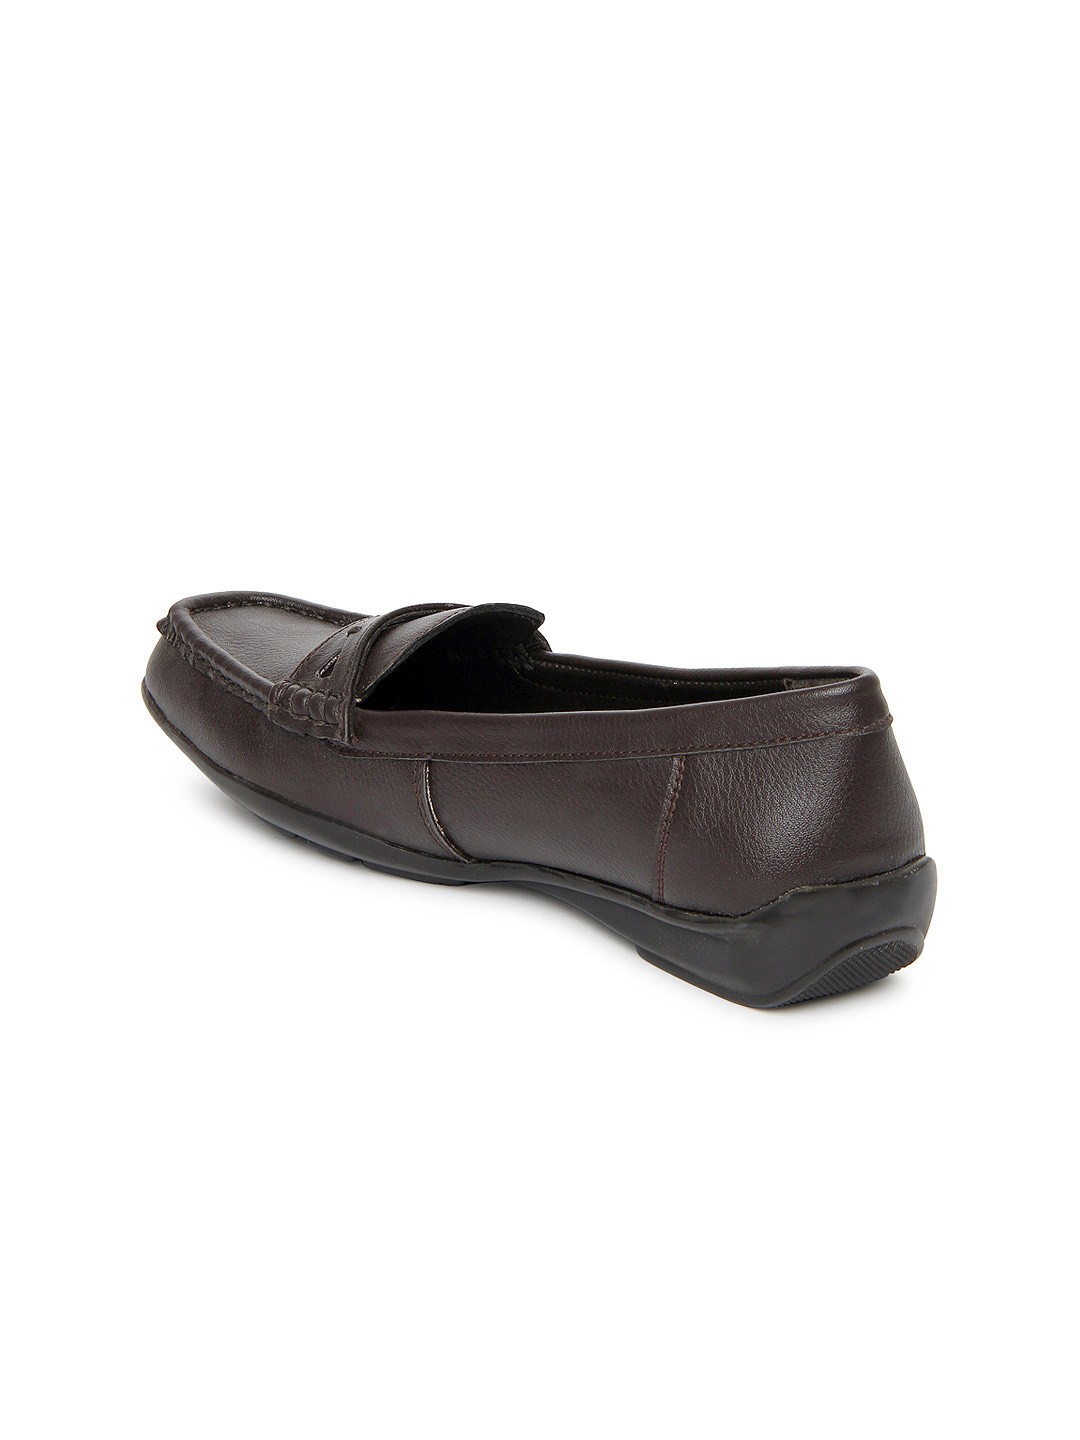 Myntra La Briza Women Dark Brown Flat Shoes 371244 | Buy Myntra La Briza Flats At Best Price ...